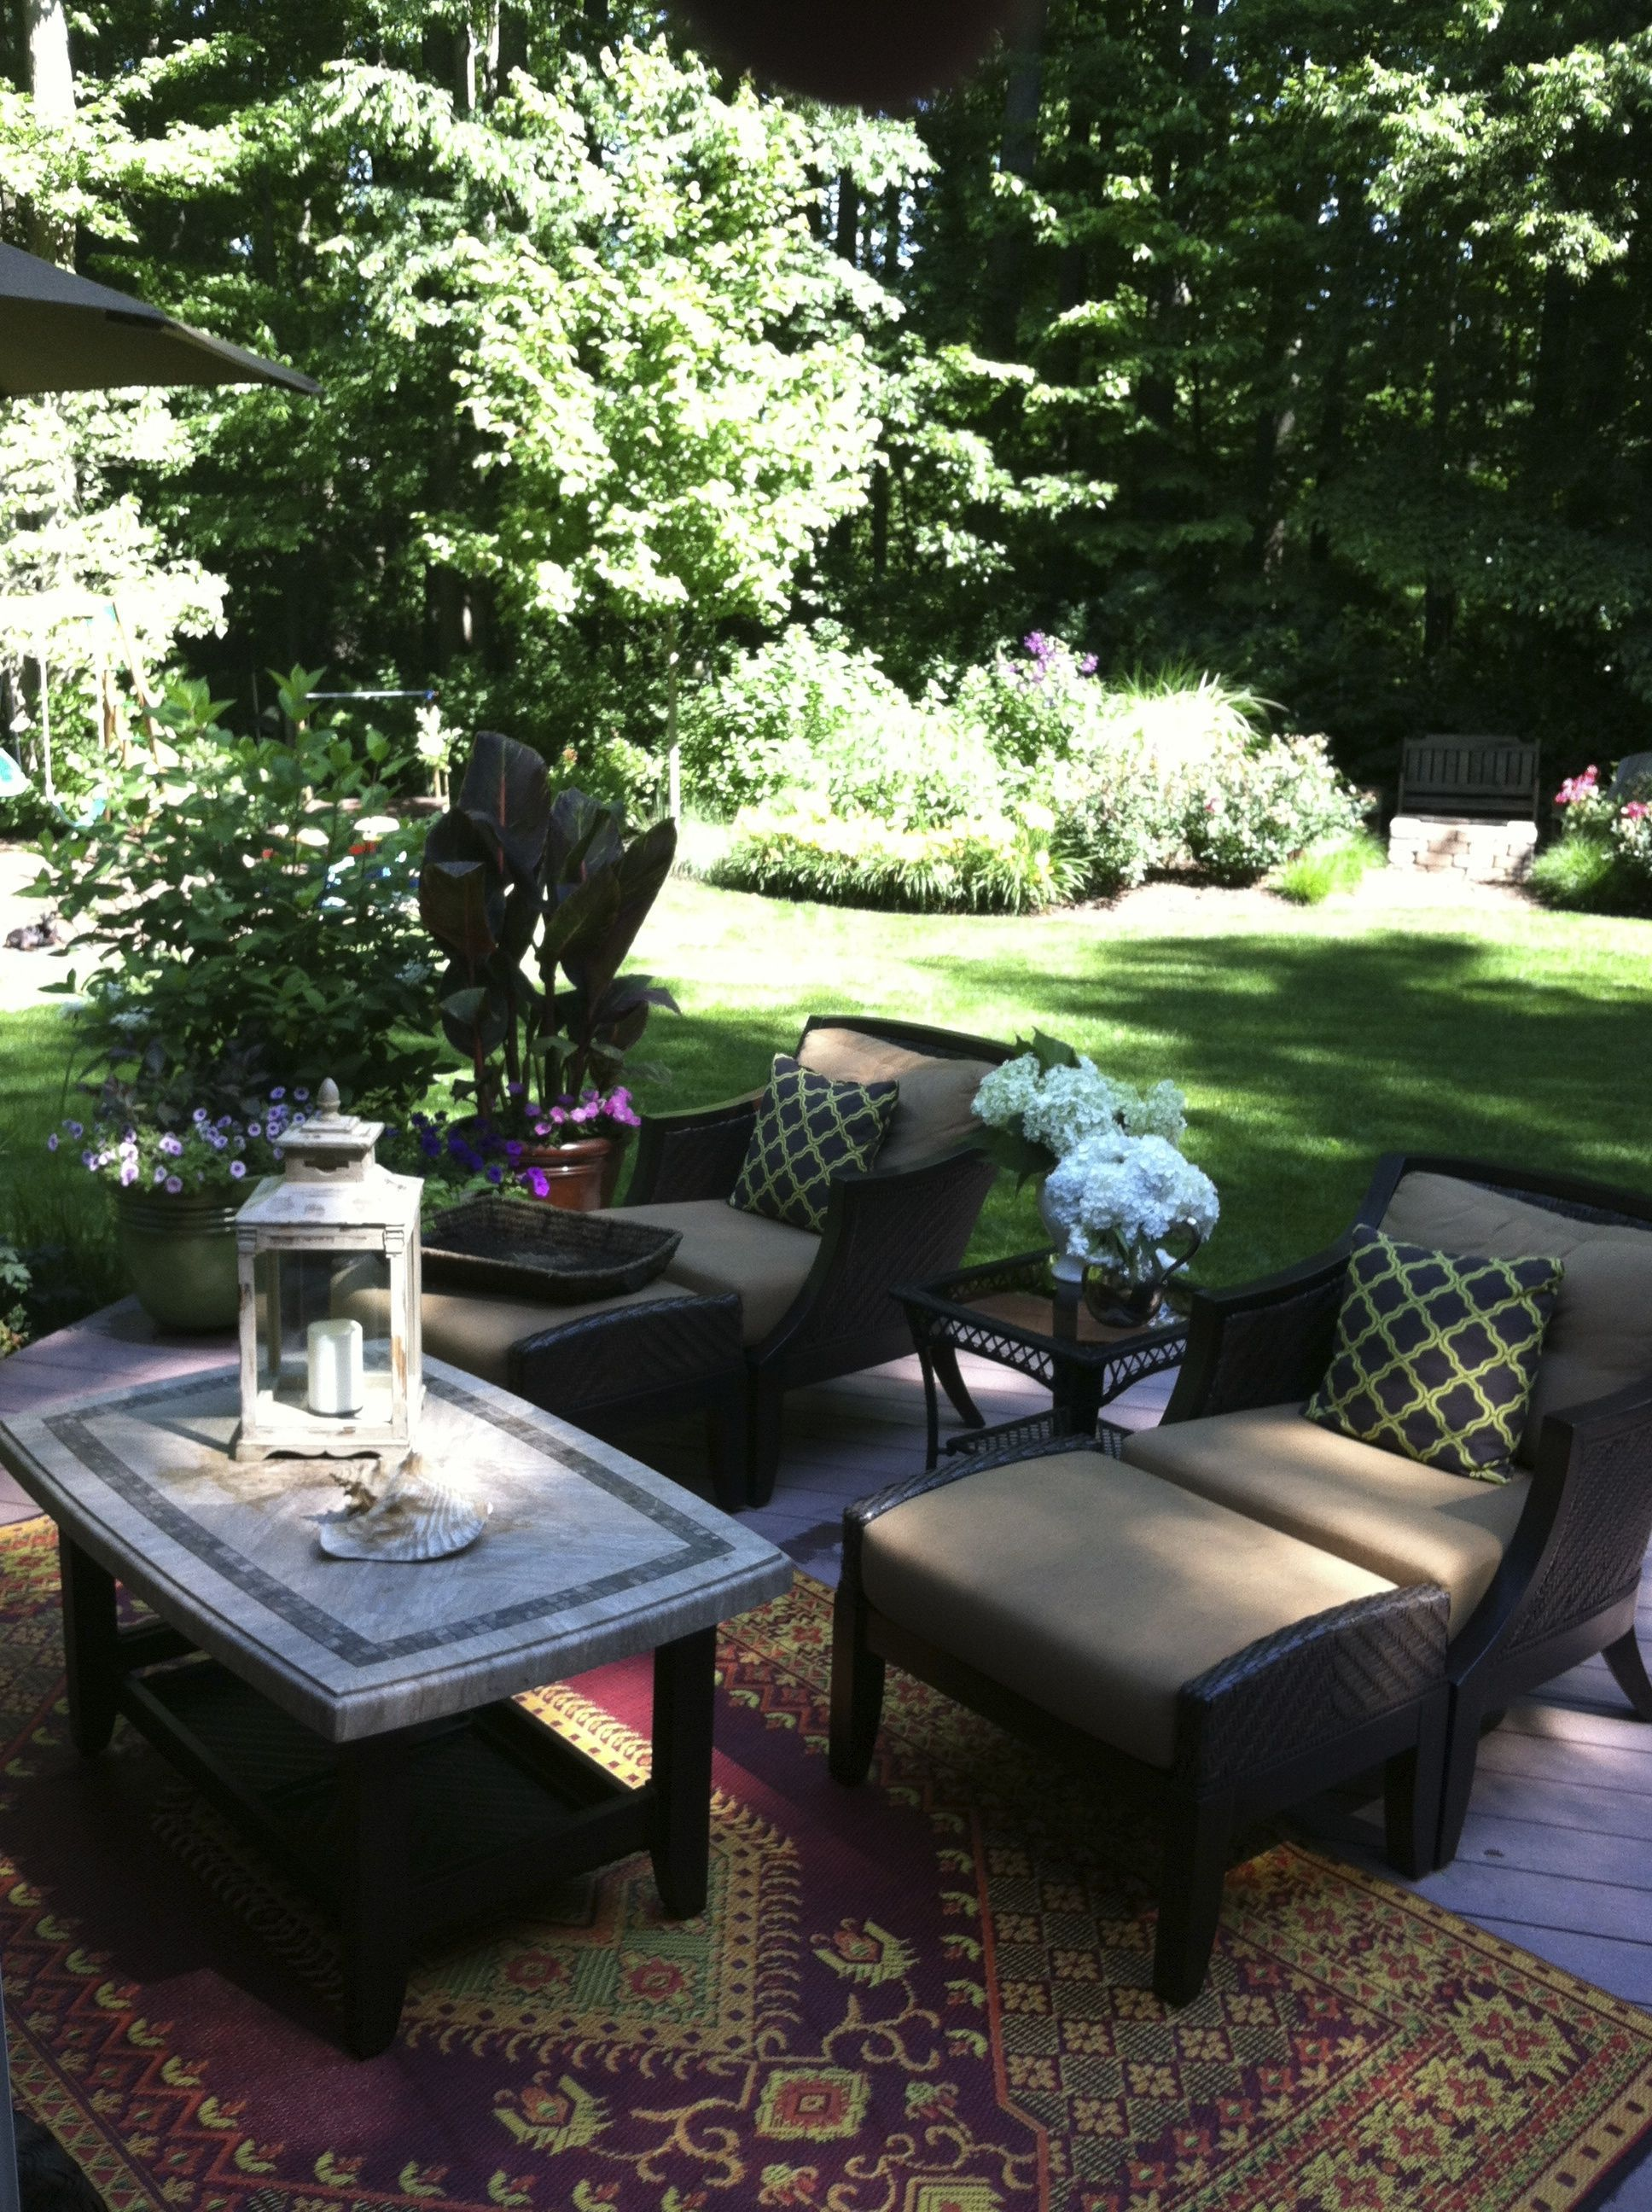 outdoor seating area , Mad Mats rug, Costco furniture in